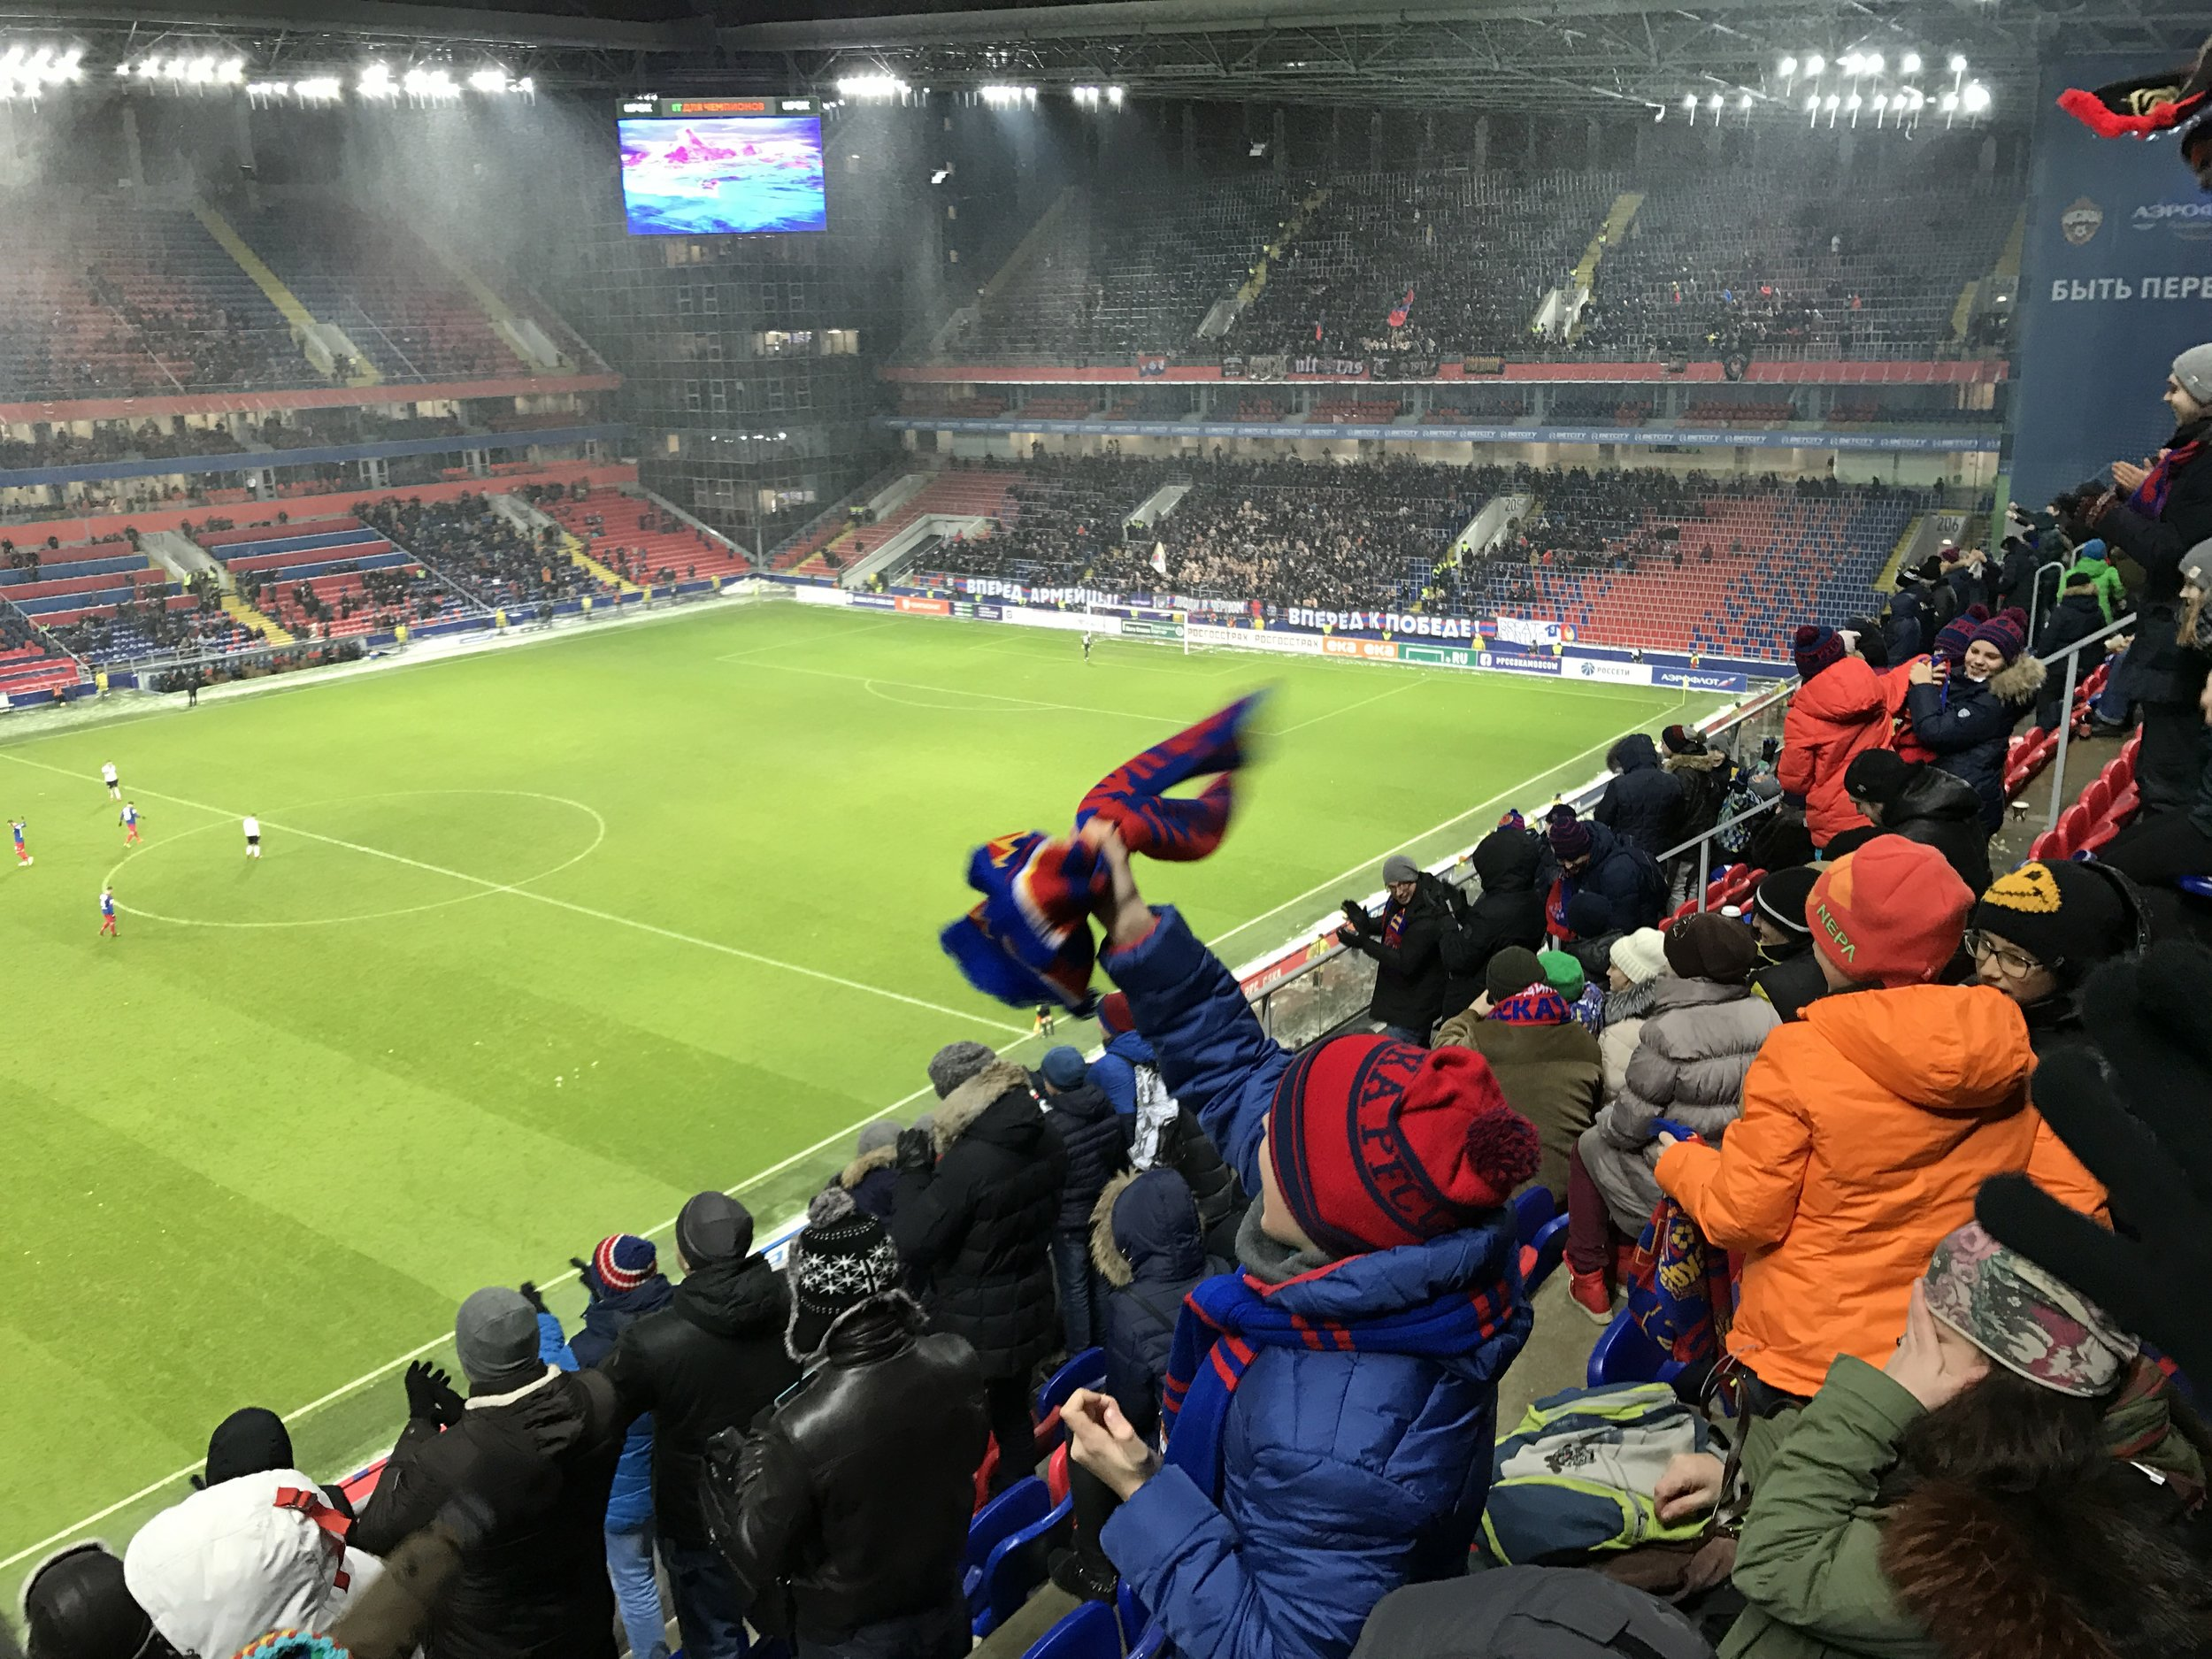 CSKA Moscow easily beat Tosno 6-0 in league competition, while also missing a penalty in the game.